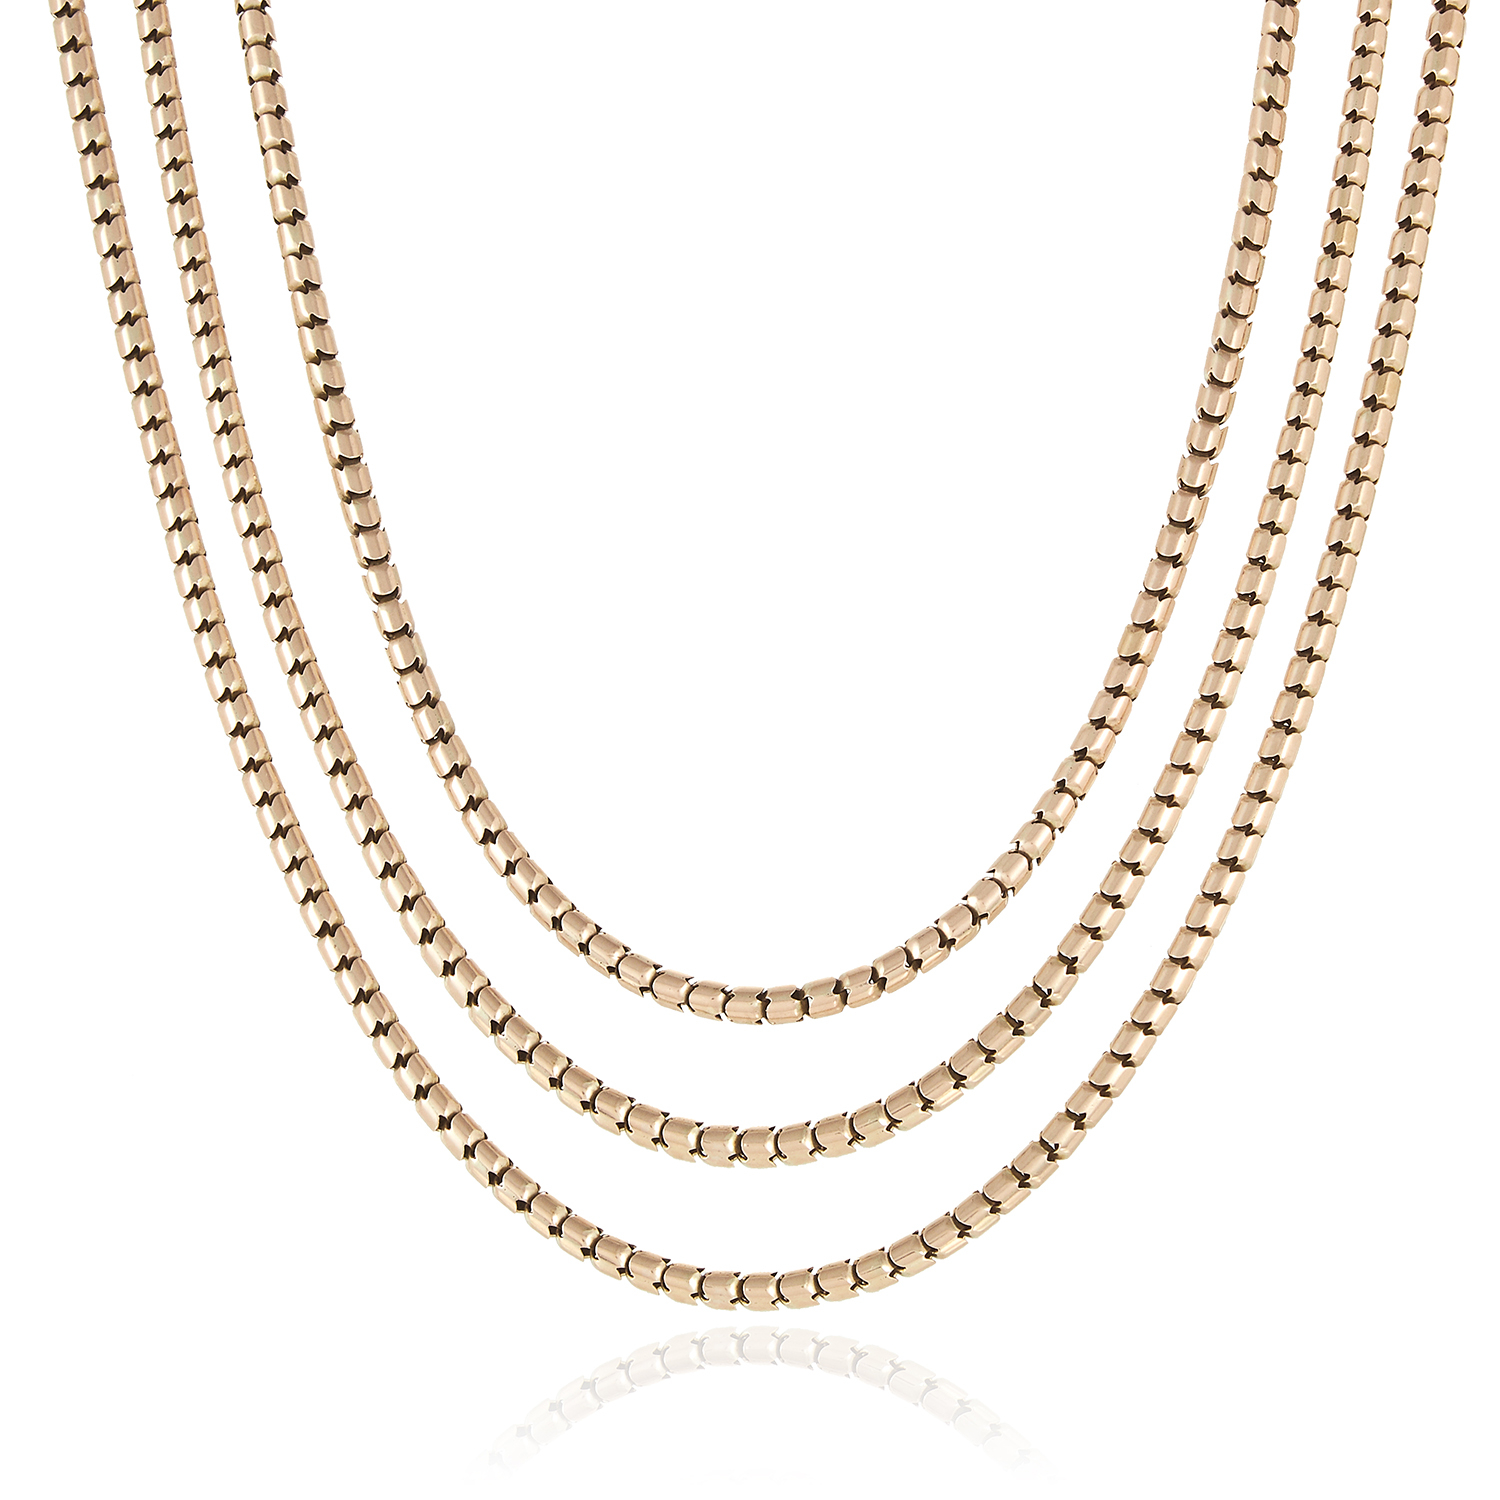 Los 101 - A GOLD FANCY LINK WATCH CHAIN in yellow gold, 80cm, 47.3g.